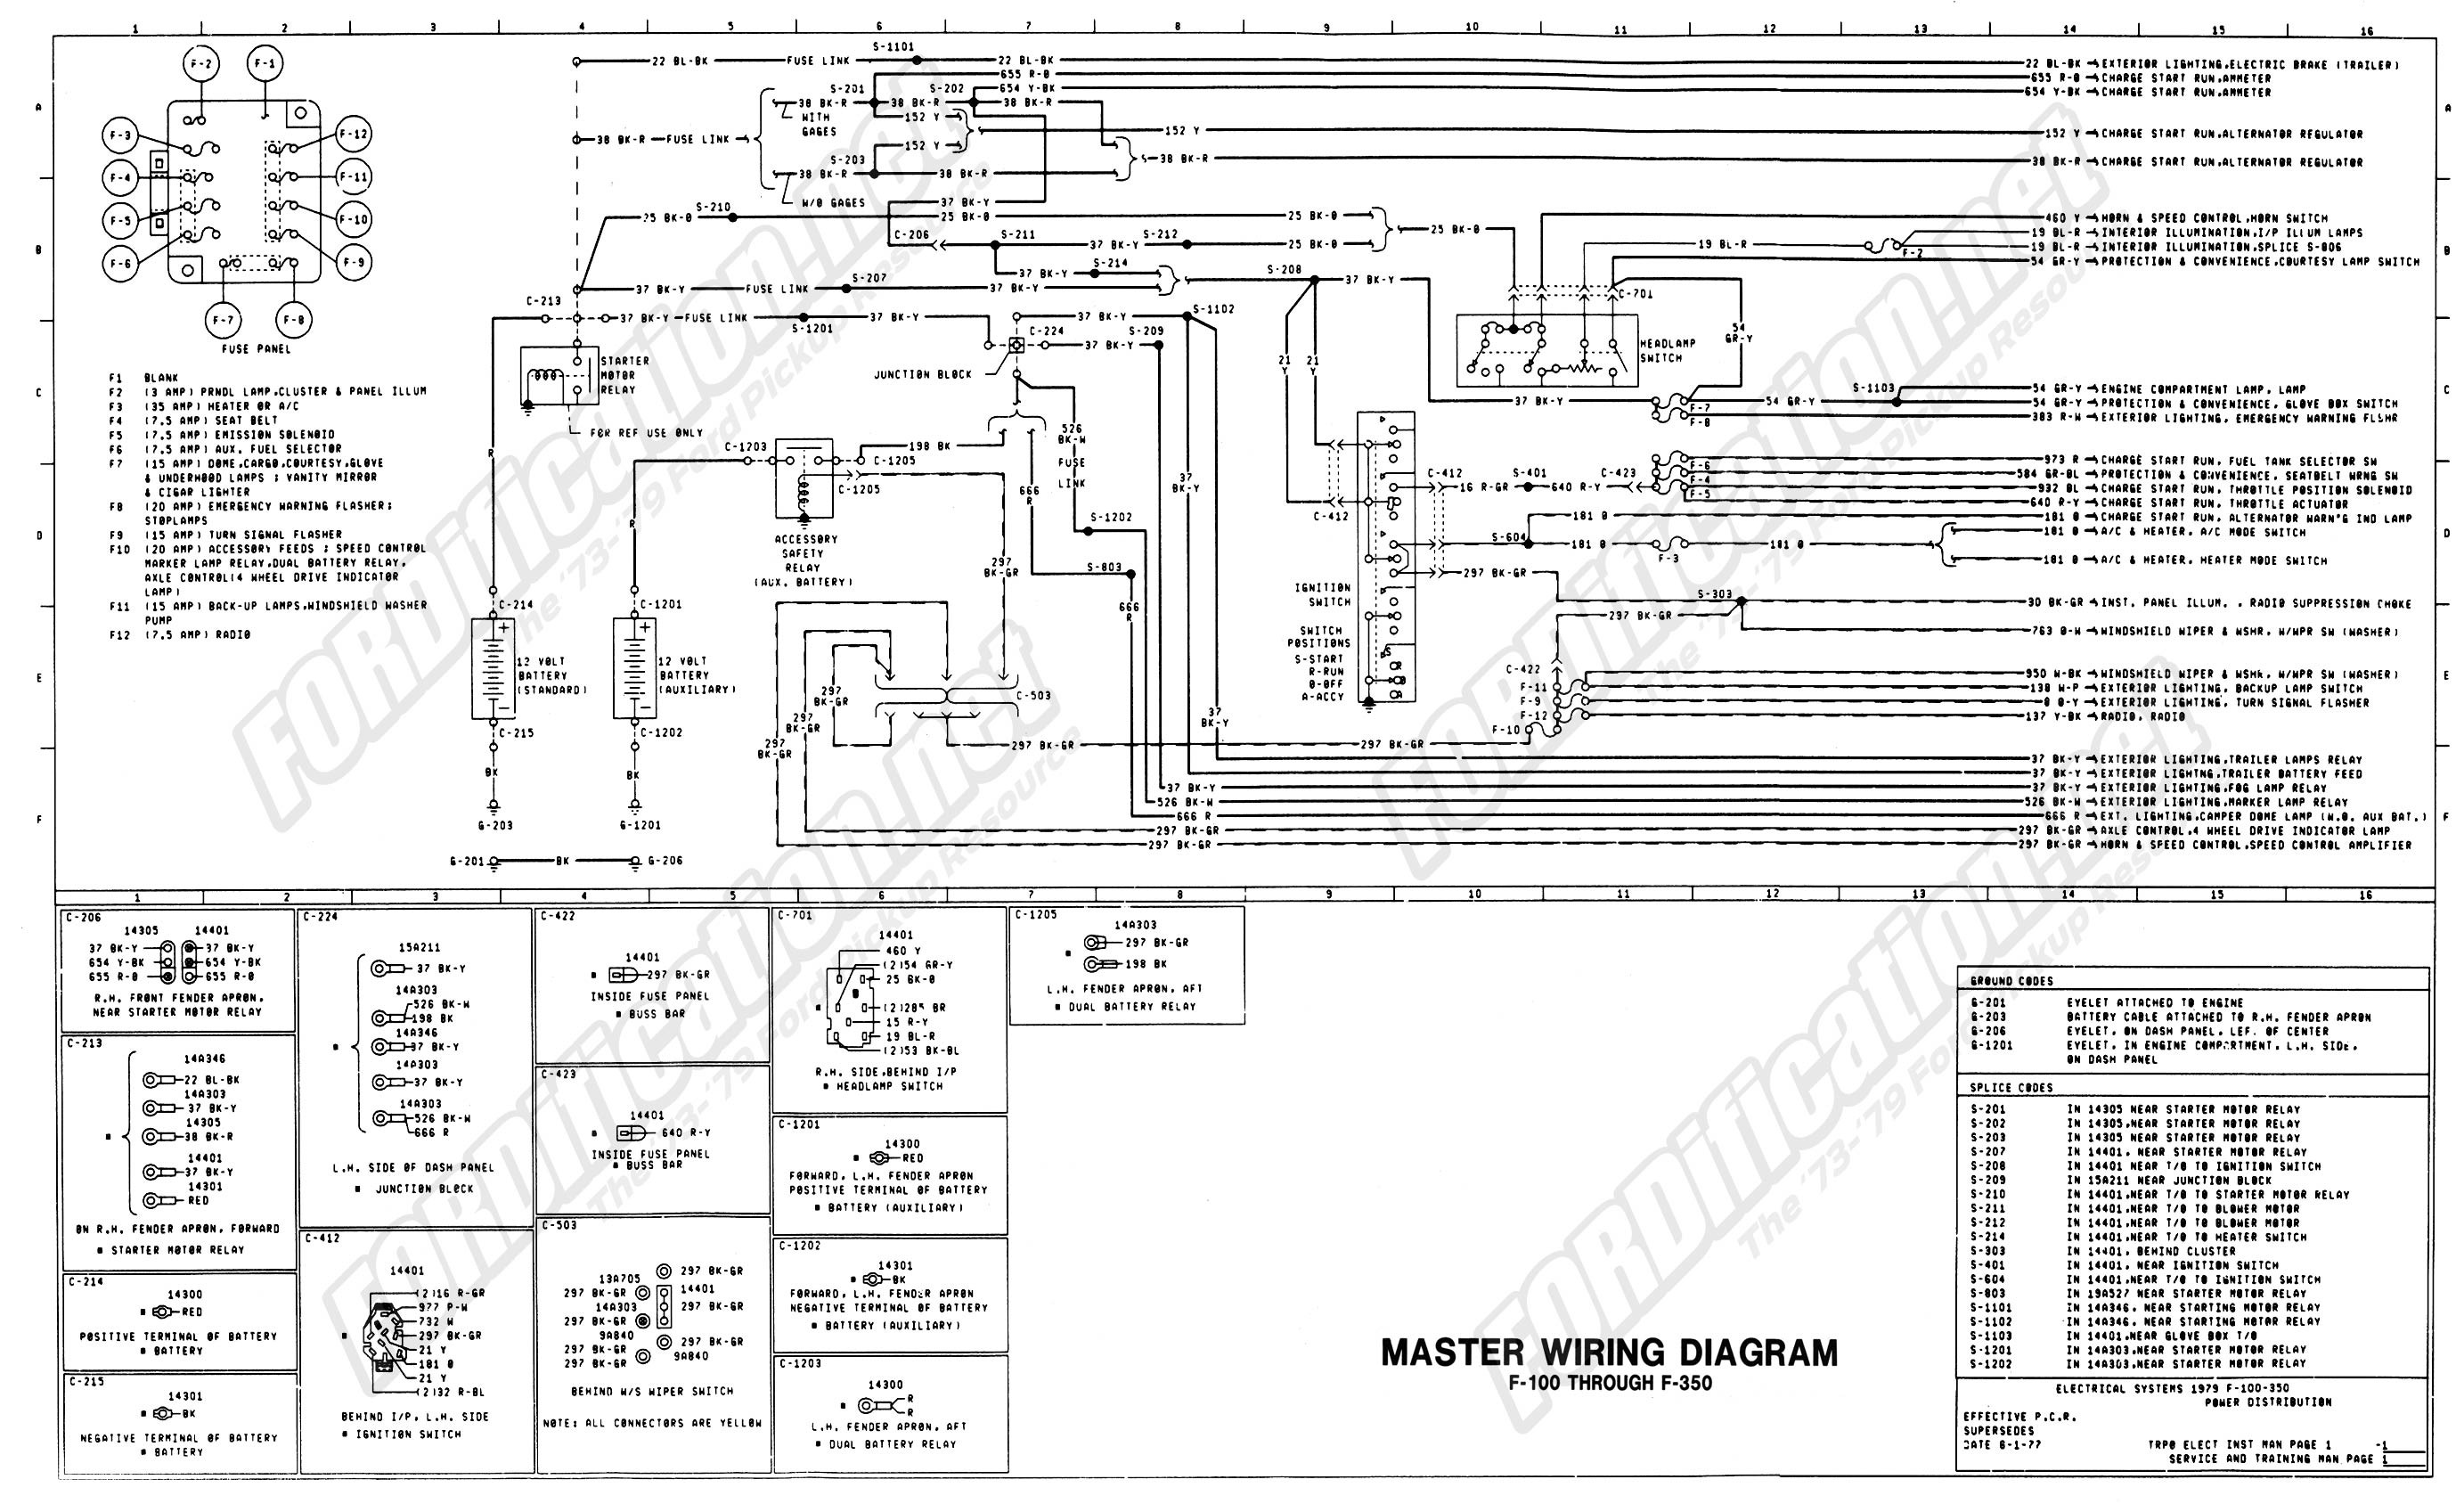 Ford F150 Wiring Diagrams F150 Wiring Harness Further 1970 ford torino Ignition Wiring Diagram Of Ford F150 Wiring Diagrams